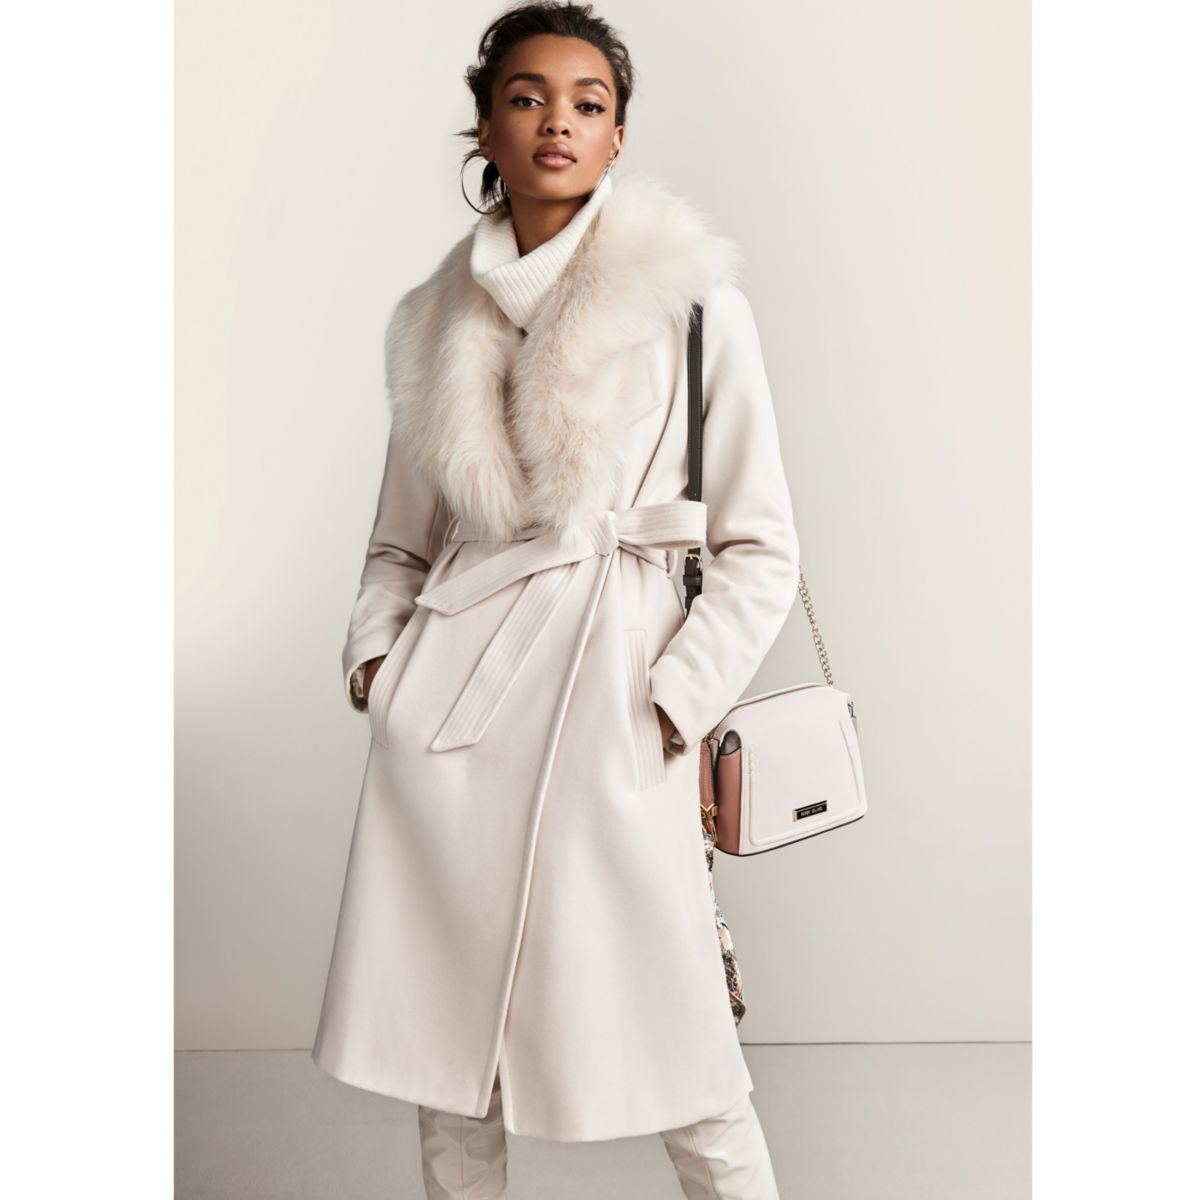 From light, everyday cotton jackets spring jackets to cozy winter peacoats, our women's coats and jackets are made from the very best materials (think world-famous Italian mills) and with attention to what we like to call